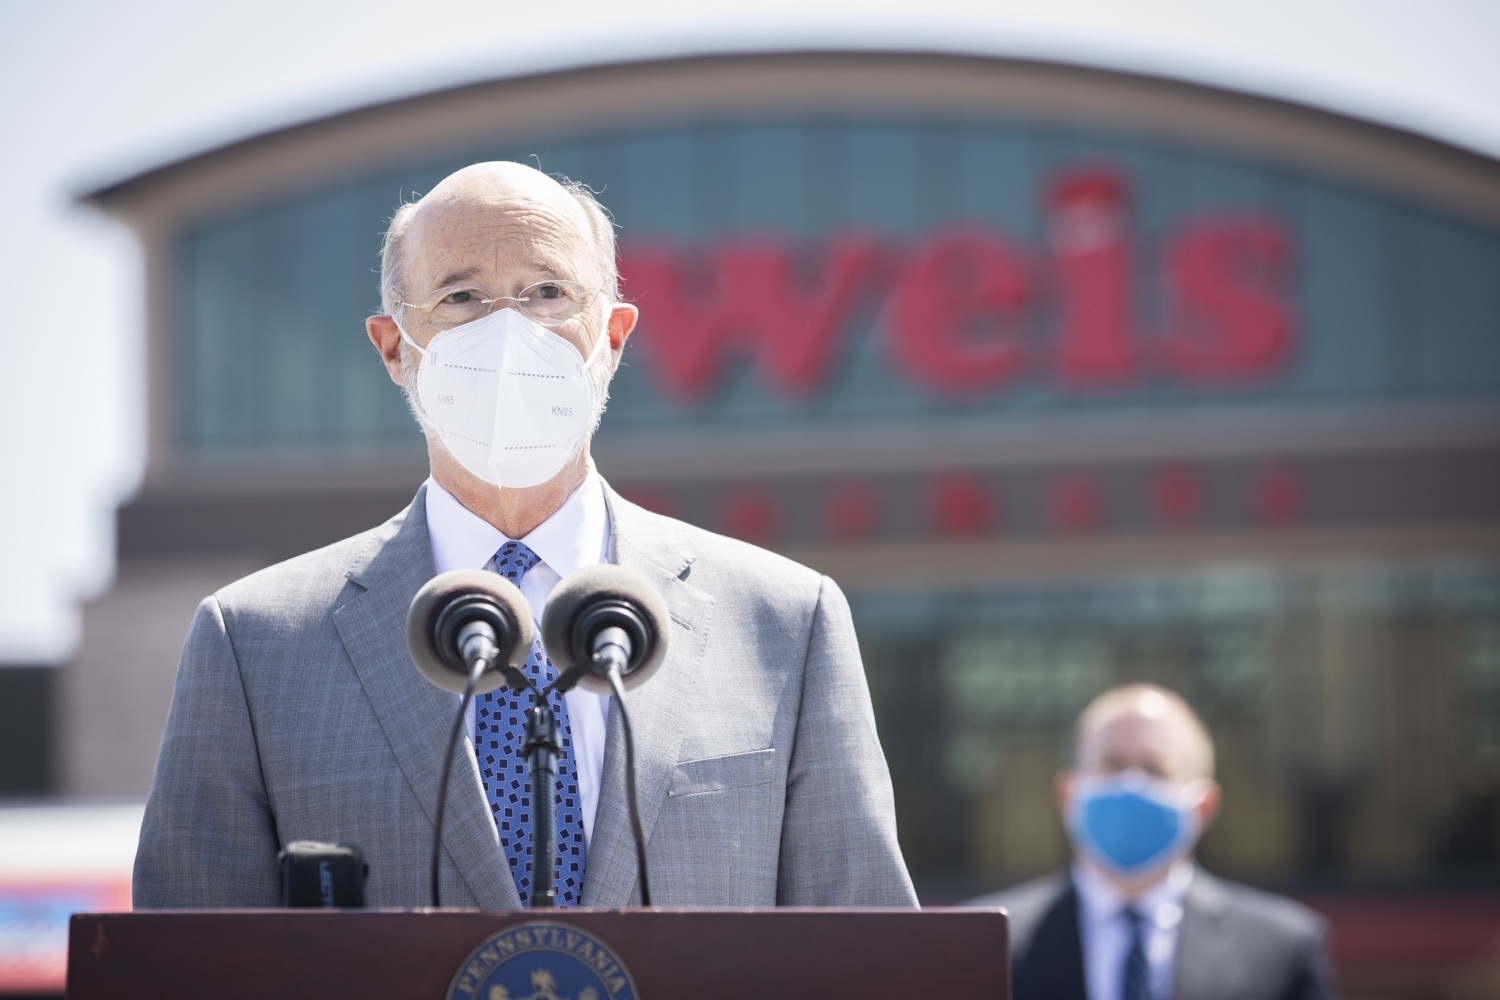 """<a href=""""https://filesource.wostreaming.net/commonwealthofpa/photo/18654_gov_vaccineeligibility_dz_001.jpg"""" target=""""_blank"""">⇣Download Photo<br></a>Pennsylvania Governor Tom Wolf speaking to the press.  Gov. Tom Wolf visited Weis Markets in Enola, Cumberland County, to recognize the heroic efforts of Pennsylvania's grocery store workers, who are now eligible for the COVID-19 vaccine.  The governor expressed his gratitude to Pennsylvania's 180,000 grocery store workers, who suddenly became frontline workers as the state took critical steps to mitigate the spread of COVID-19. Grocery stores were deemed life-sustaining businesses, and these employees put their lives at risk to ensure their stores remained open to the public. APRIL 06, 2021 - ENOLA, PA.."""